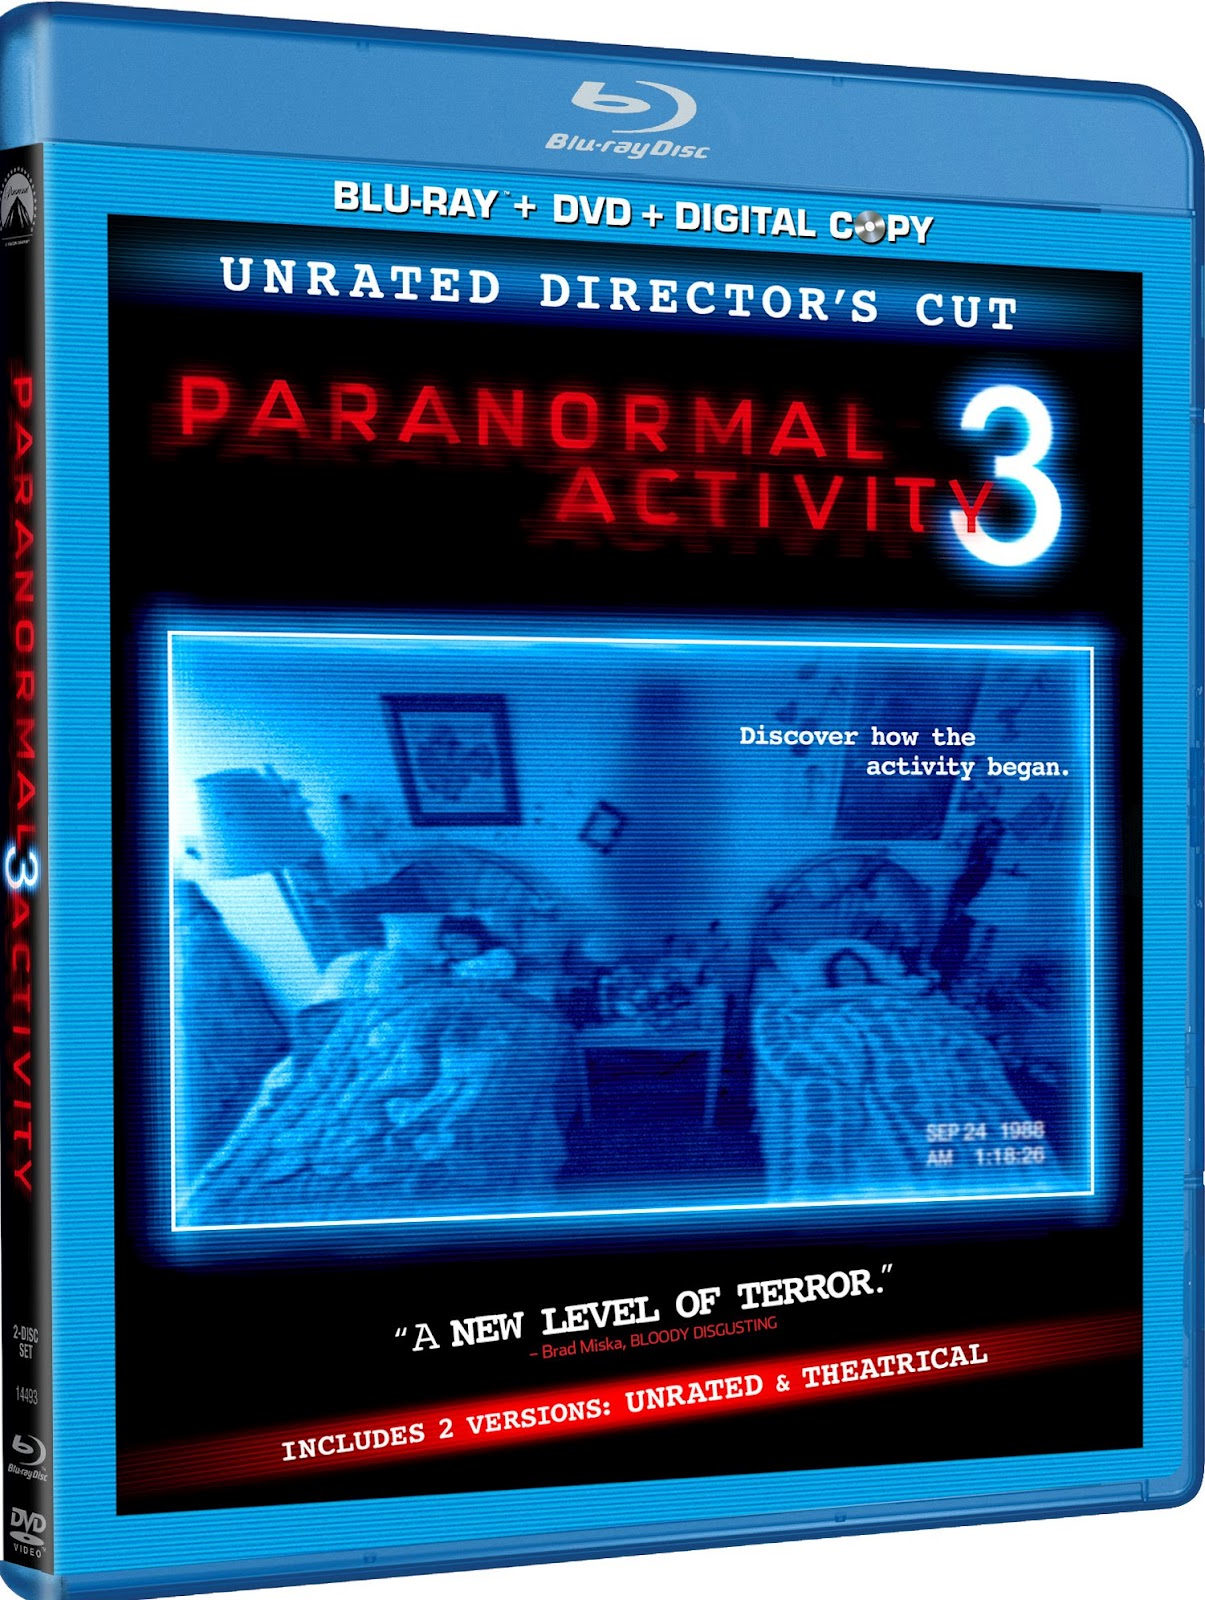 Download Film DVD: Paranormal Activity 3 (Subtitle Indonesia) - Teman